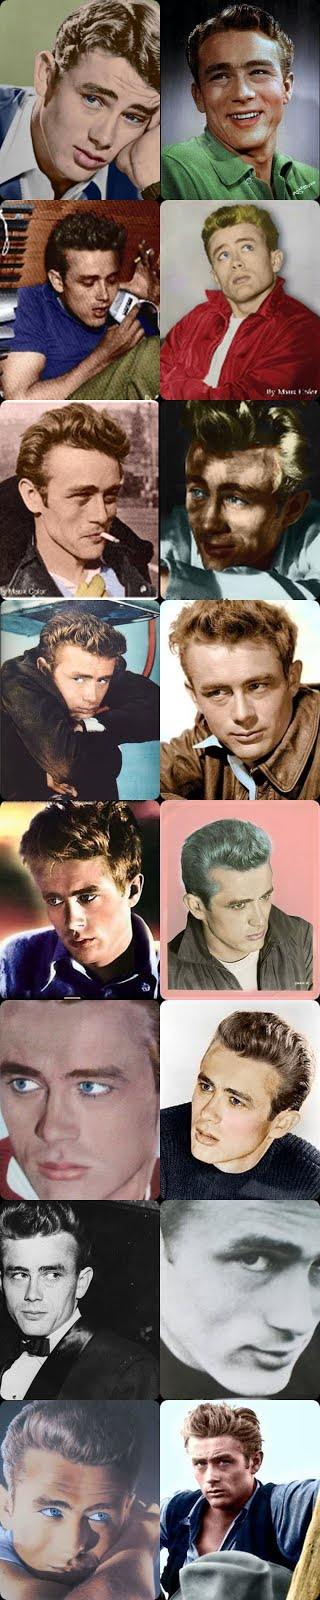 TAROT JAMES DEAN